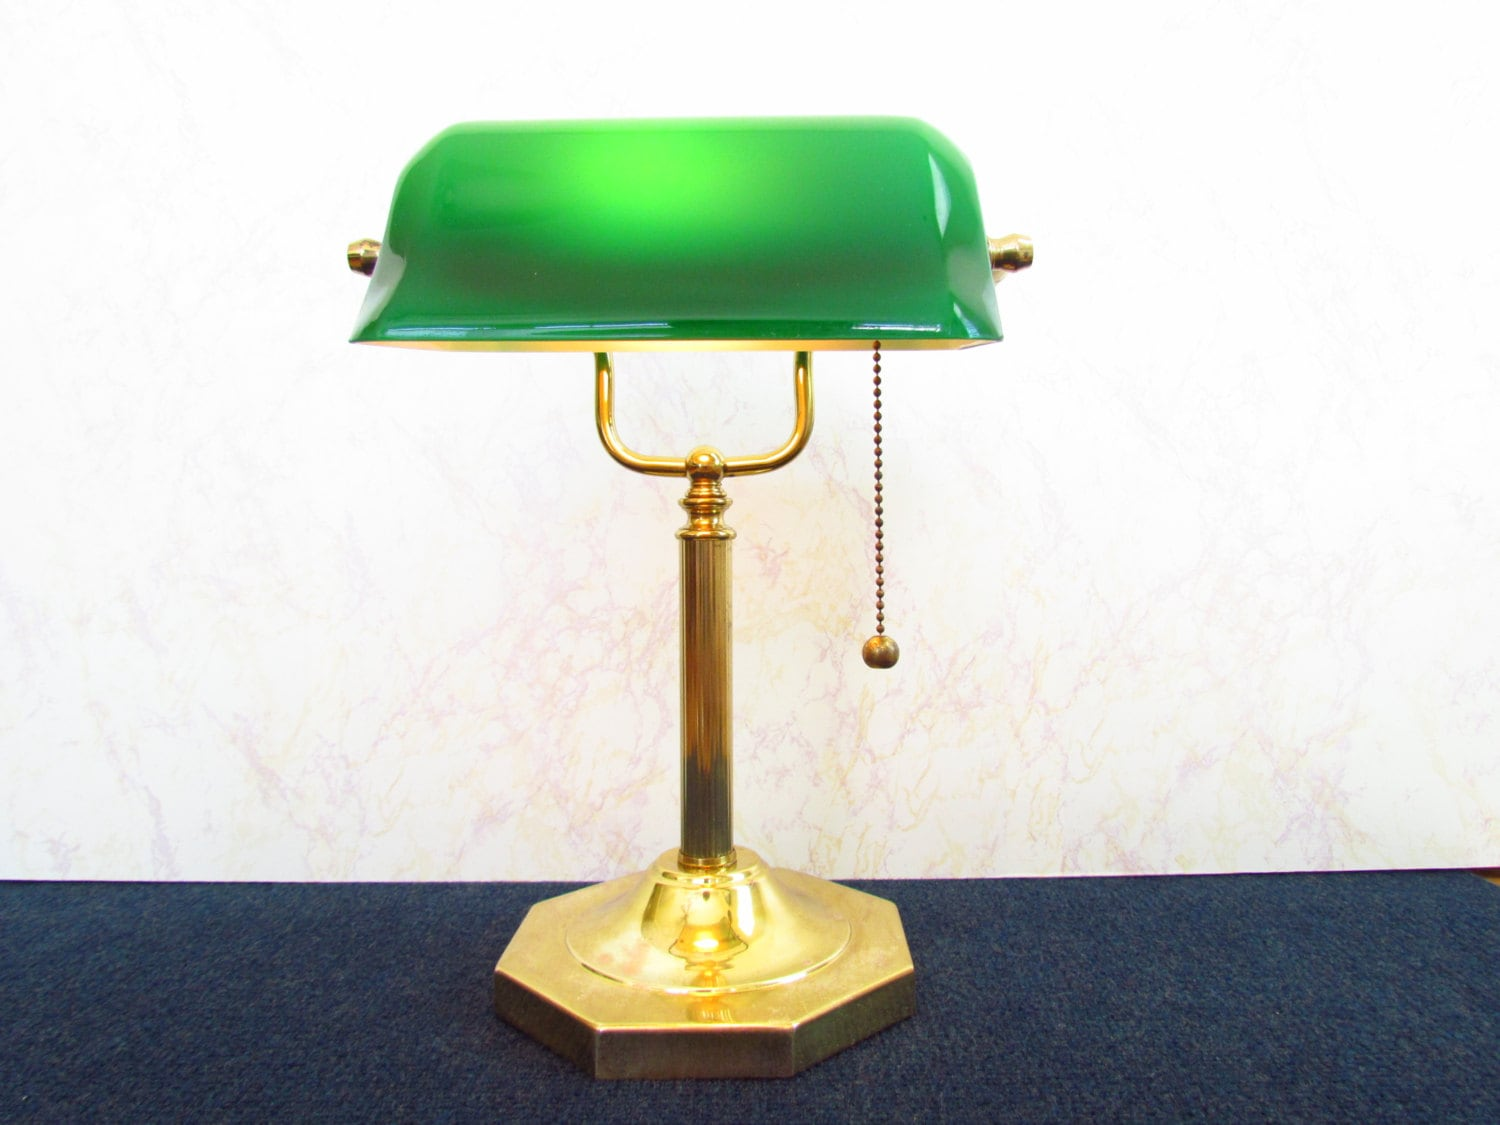 Vintage bankers desk lamp -  Bankers Desk Lamp With Green Glass Shade Zoom